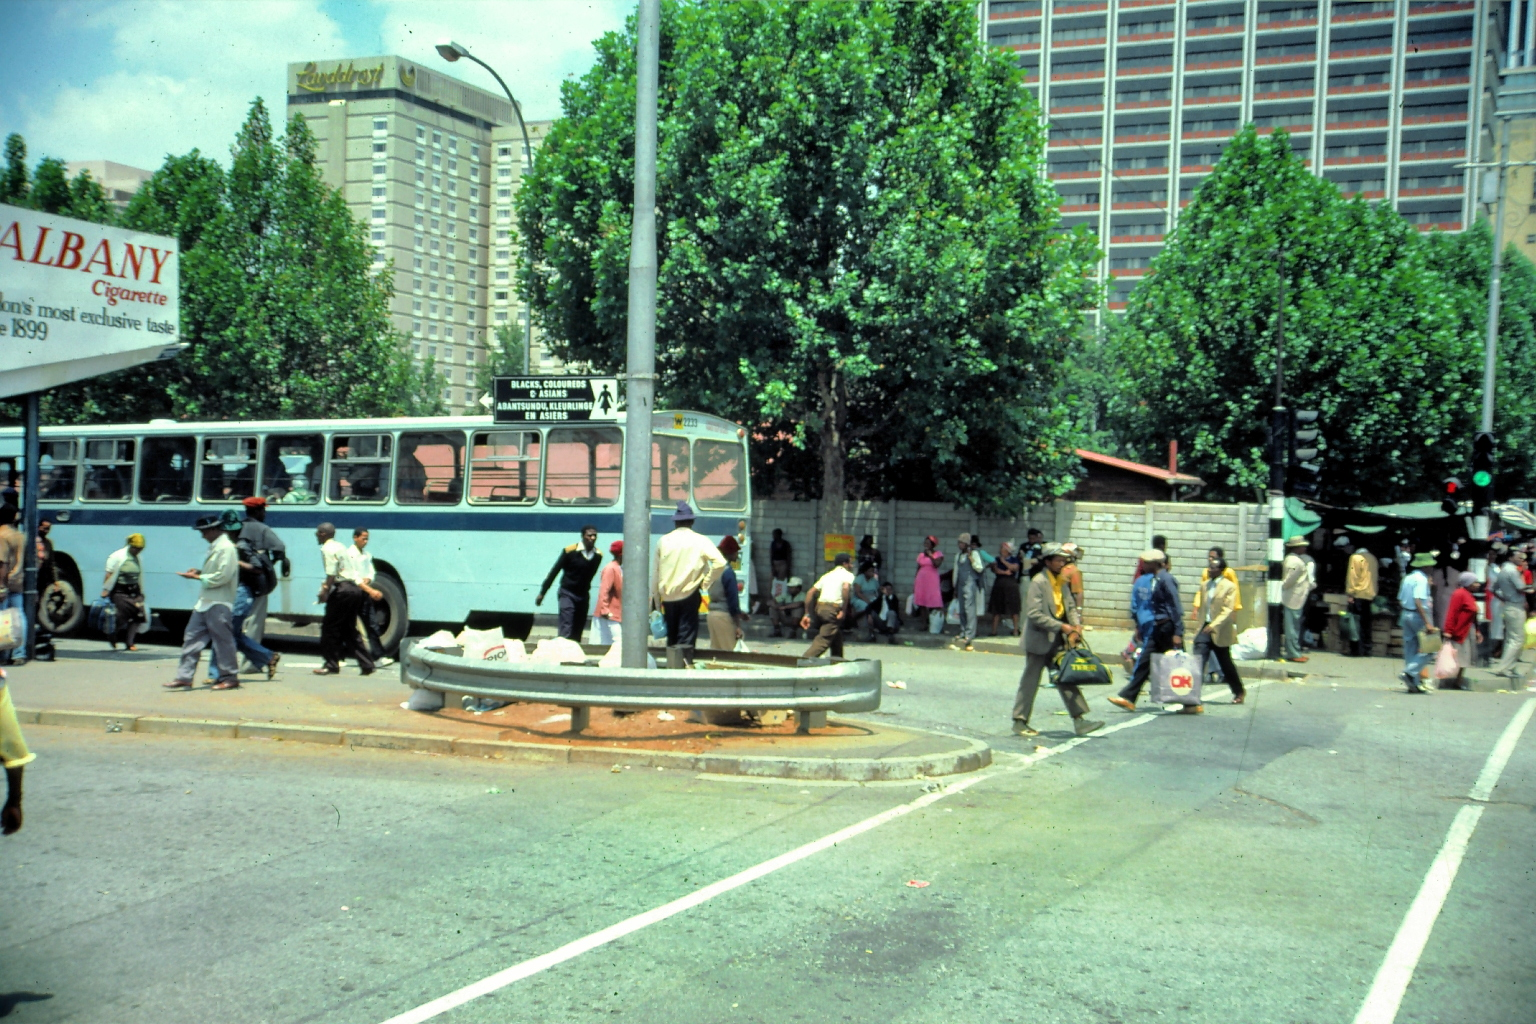 1982 - Putco busses in Johannesburg transported 'non-white' people between the townships and the city